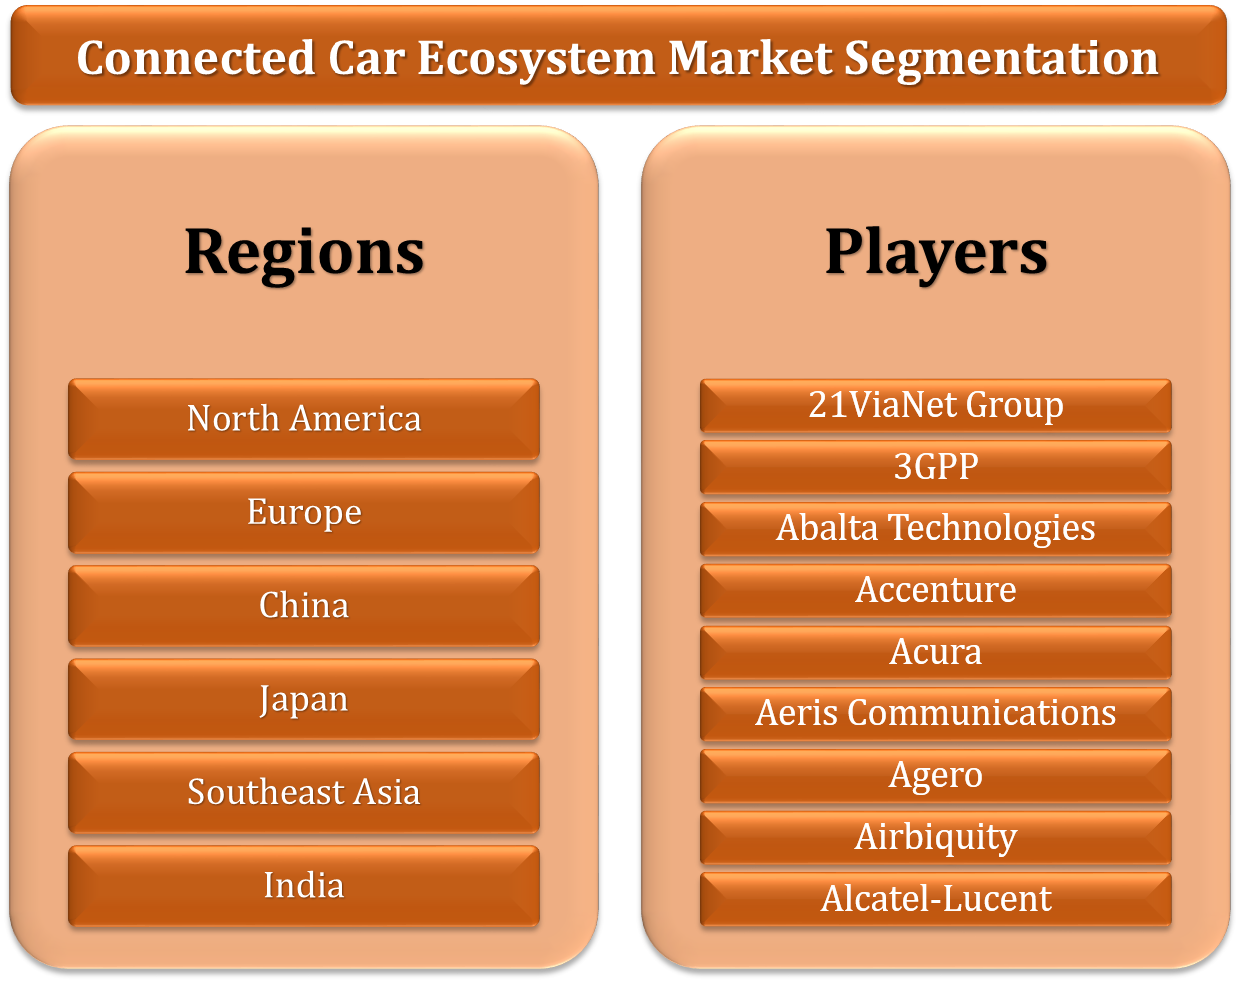 Global Connected Car Ecosystem Market Research Report Forecast 2016 To 2021 By 24 Market Reports Market Research Research Report Marketing